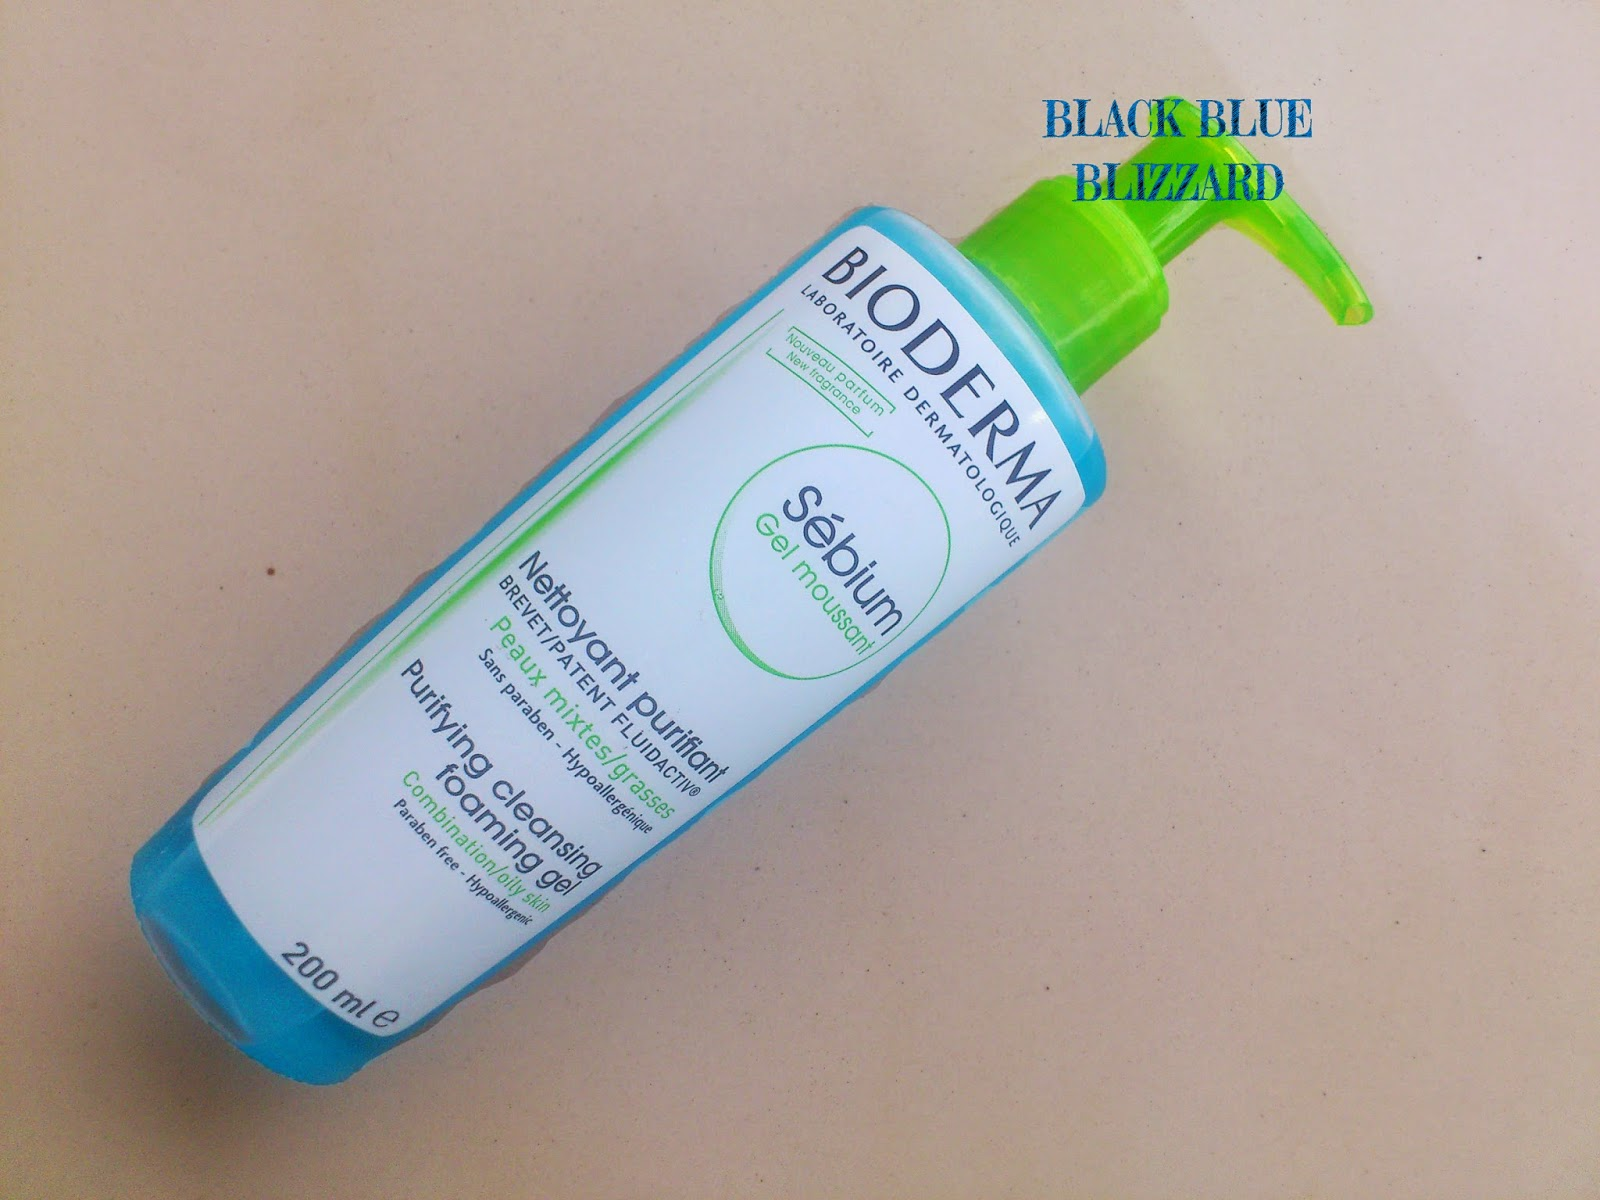 bioderma indonesia blogger, bioderma sebium, bioderma purifying cleansing foaming gel review blogger